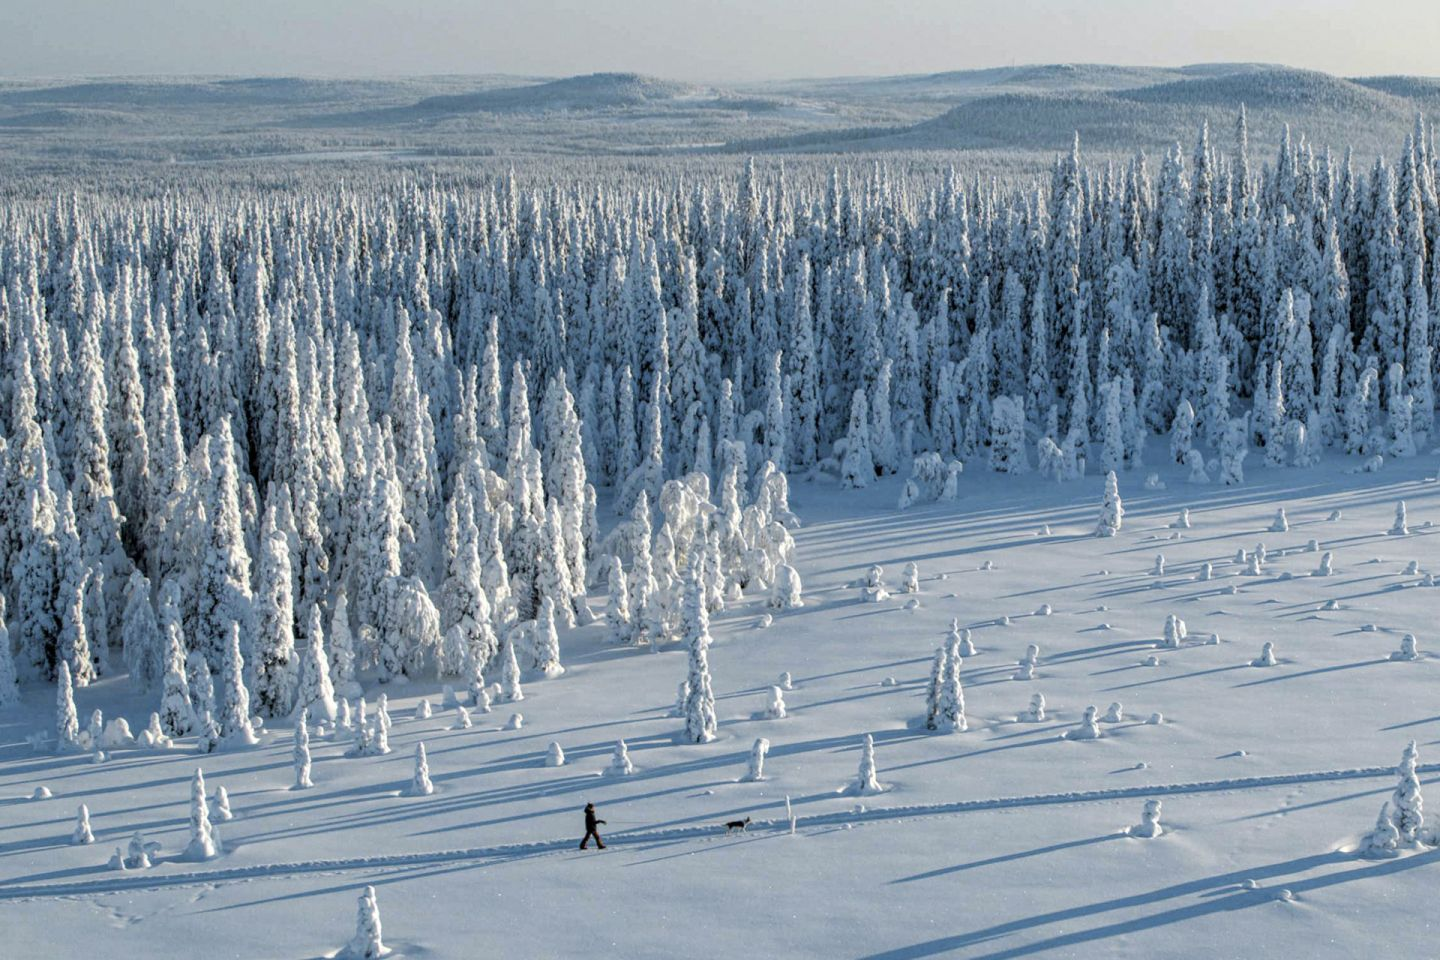 Snow-crowned trees in northern Finland